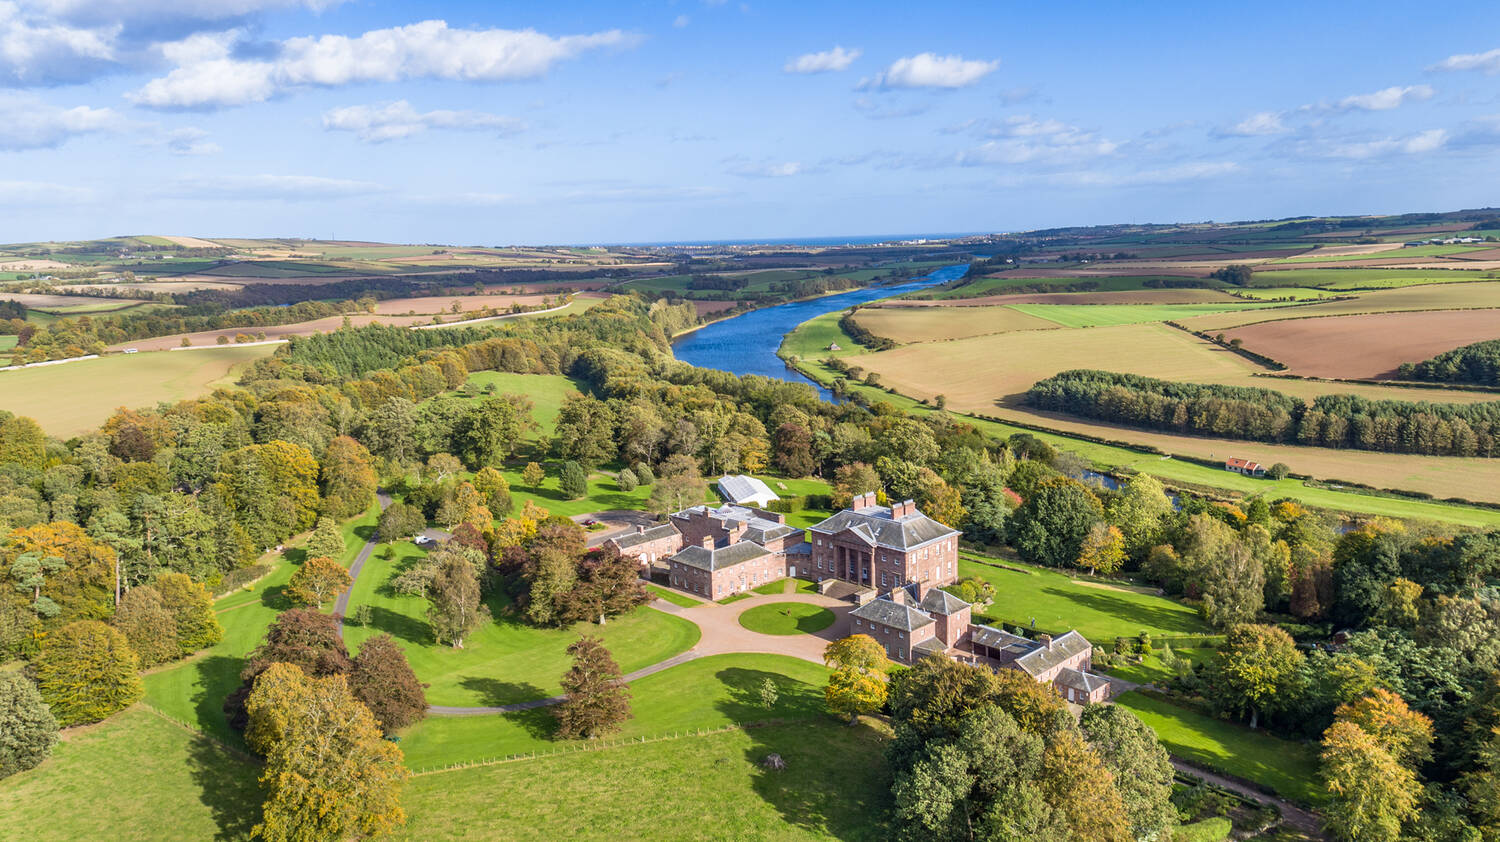 Aerial view of Paxton House and the River Tweed, at the border of Scotland and England